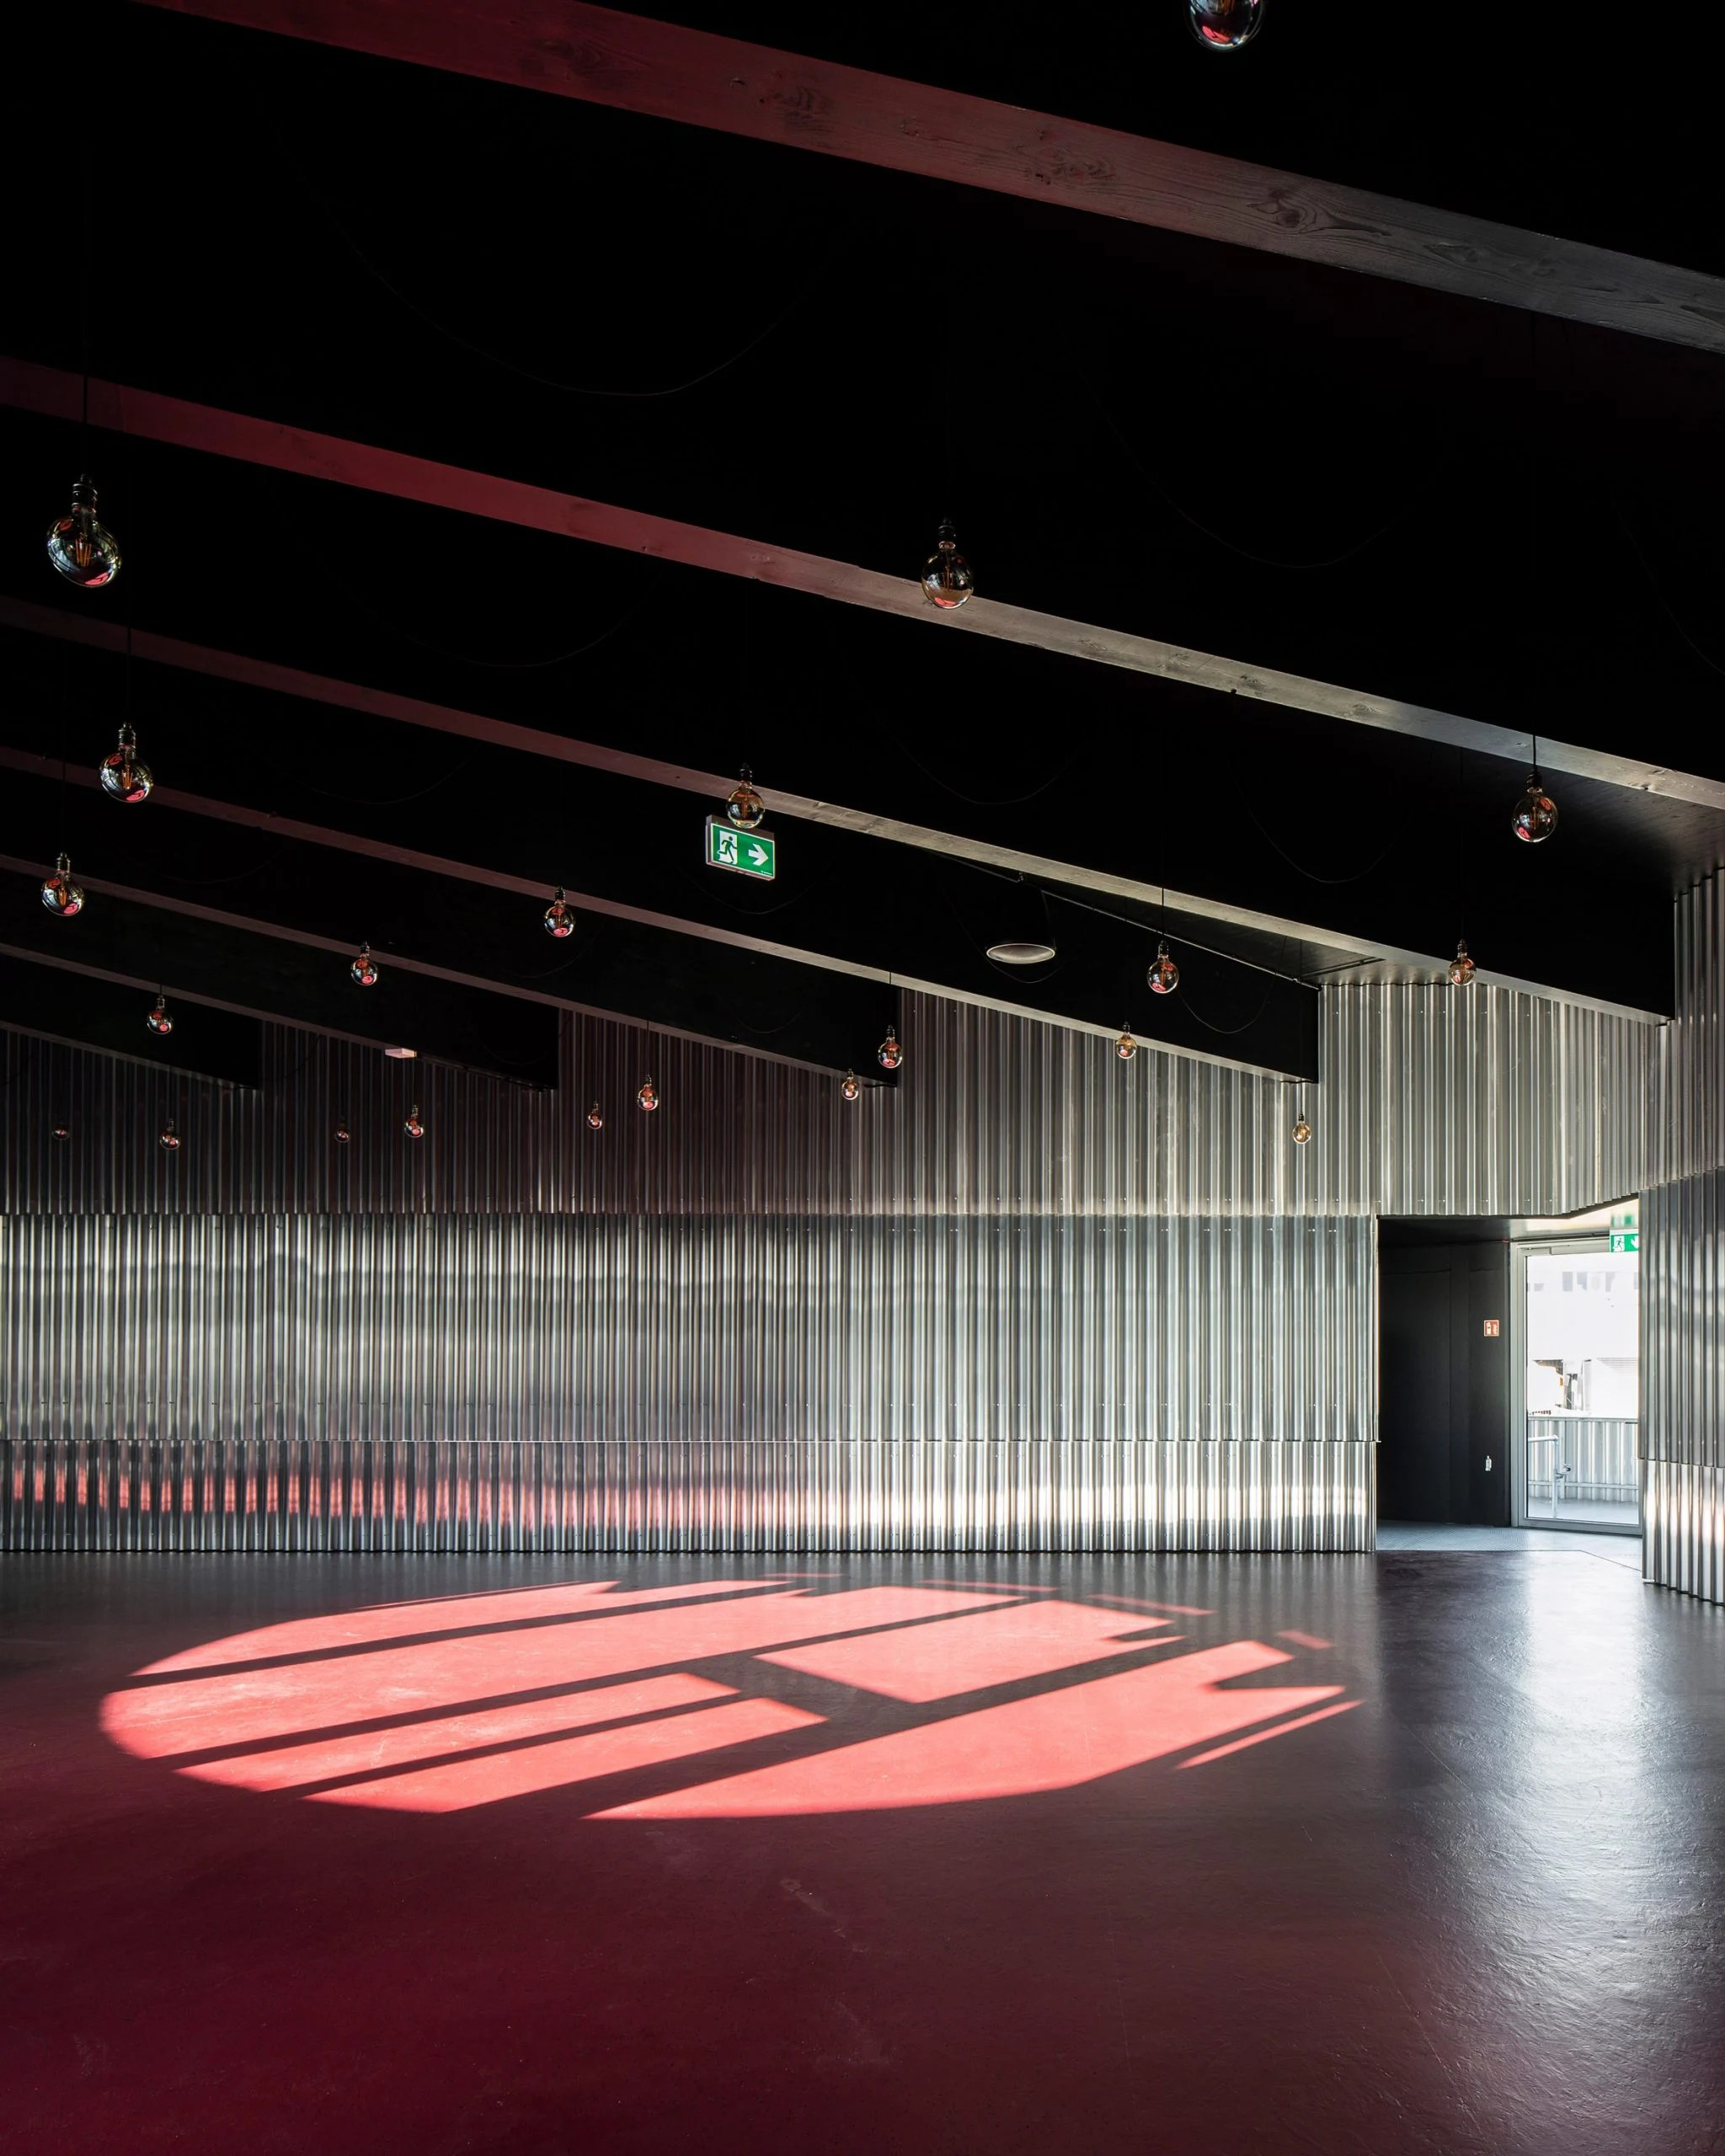 Refreshment space with cross-laminated timber roof